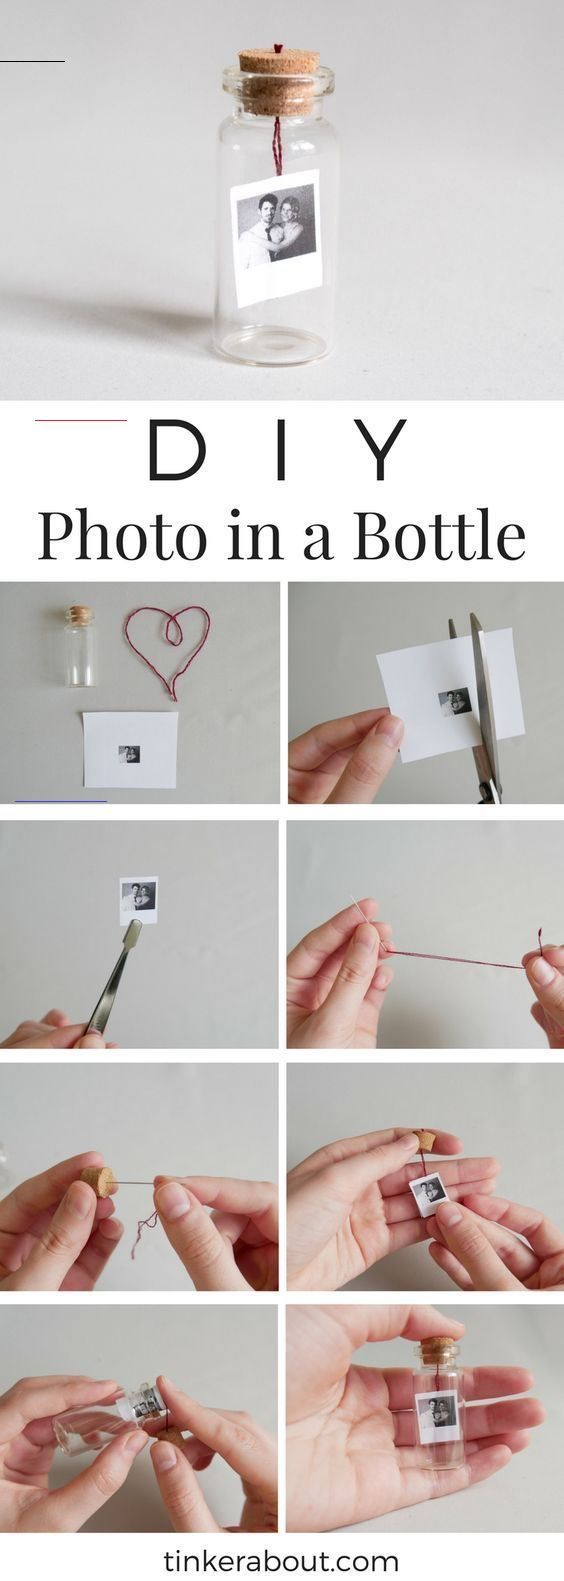 DIY Tiny Photo/Message in a Bottle as an Anniversary Gift Idea DIY Tiny Photo/Message in a Bottle as Valentine's Day Gift Idea<br> This Tiny Photo in a Bottle DIY is the perfect Valentine's Day gift idea for your significant other, your best friend or your family. It's super easy, cheap and takes only a couple of minutes. Find out more on my blog!